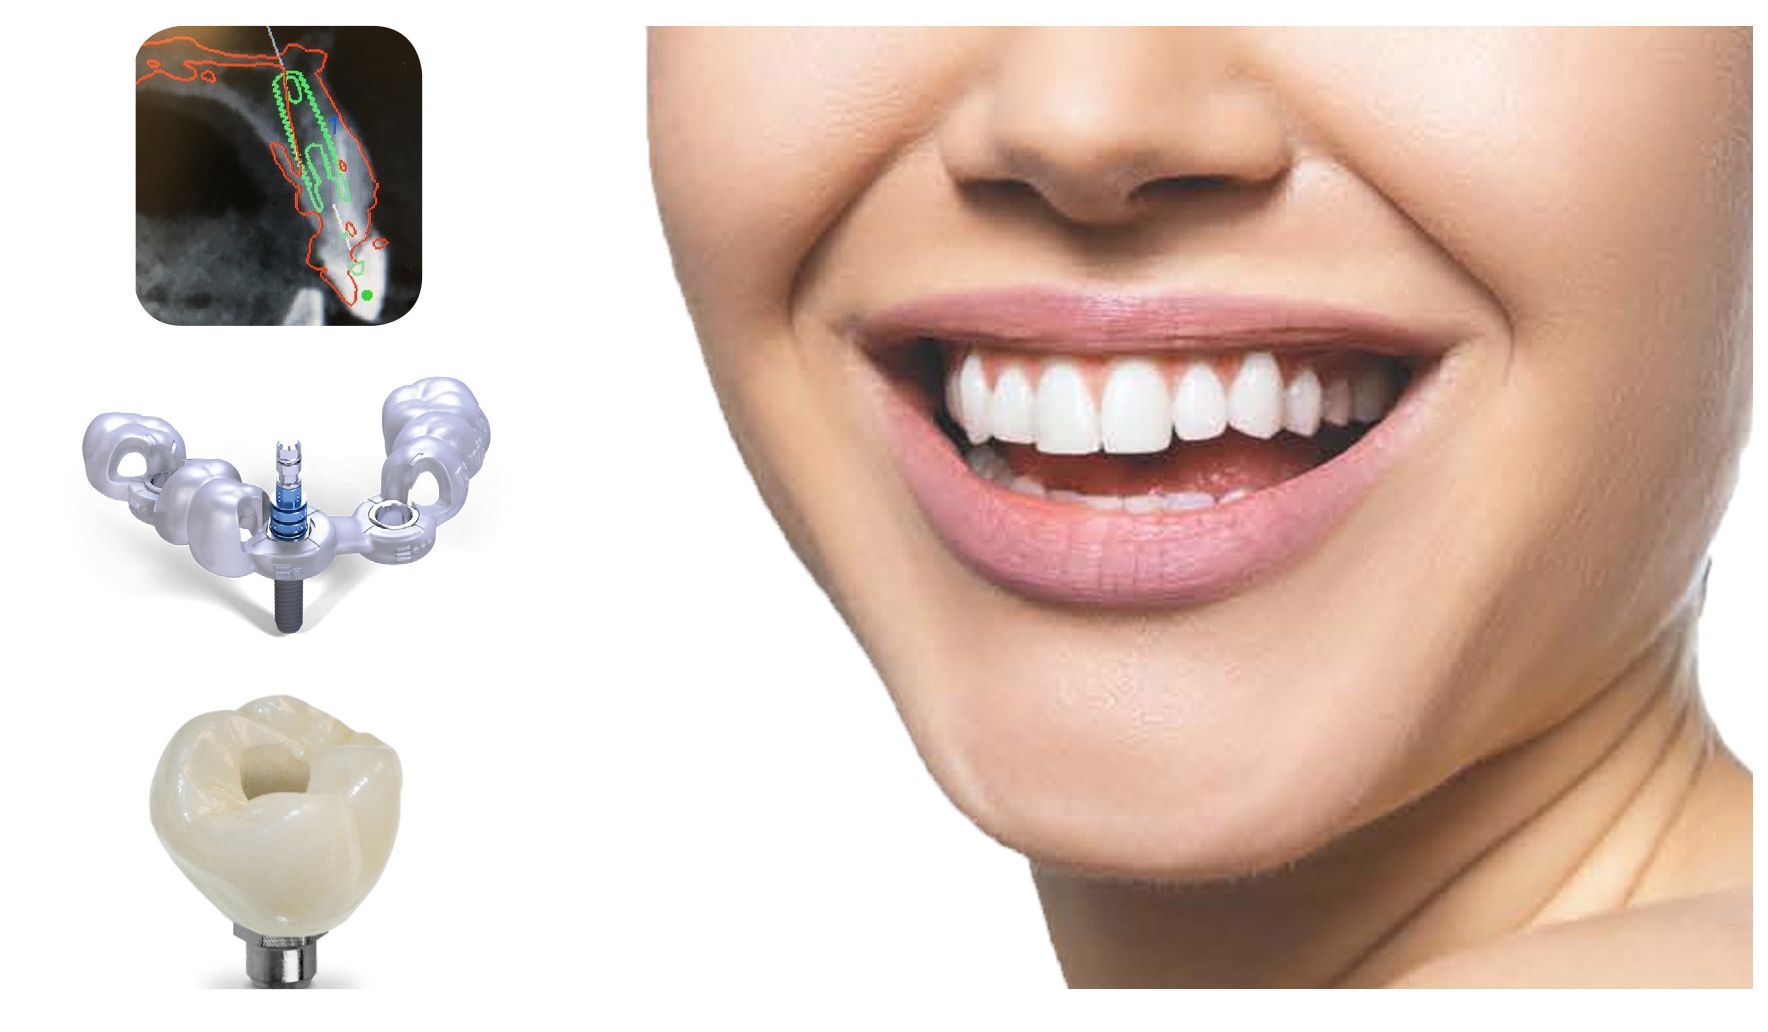 Digital Implant Placement - First Choice Dental Lab